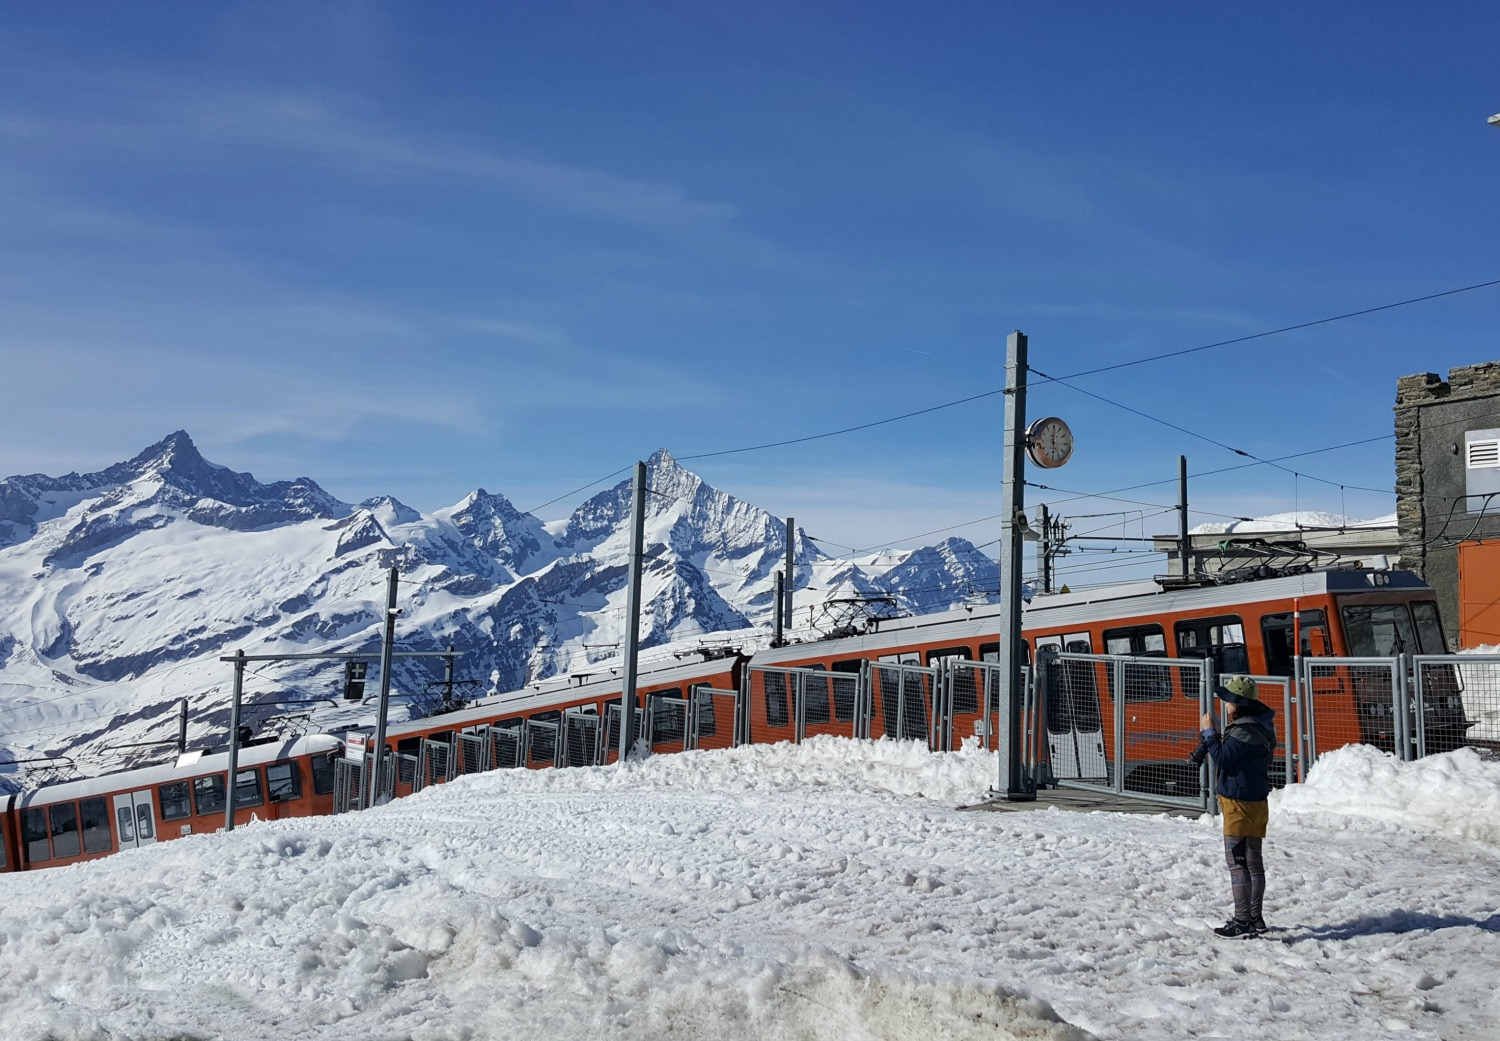 Zermatt Switzerland - Europe's highest cogwheel railway Gornergratbahn.